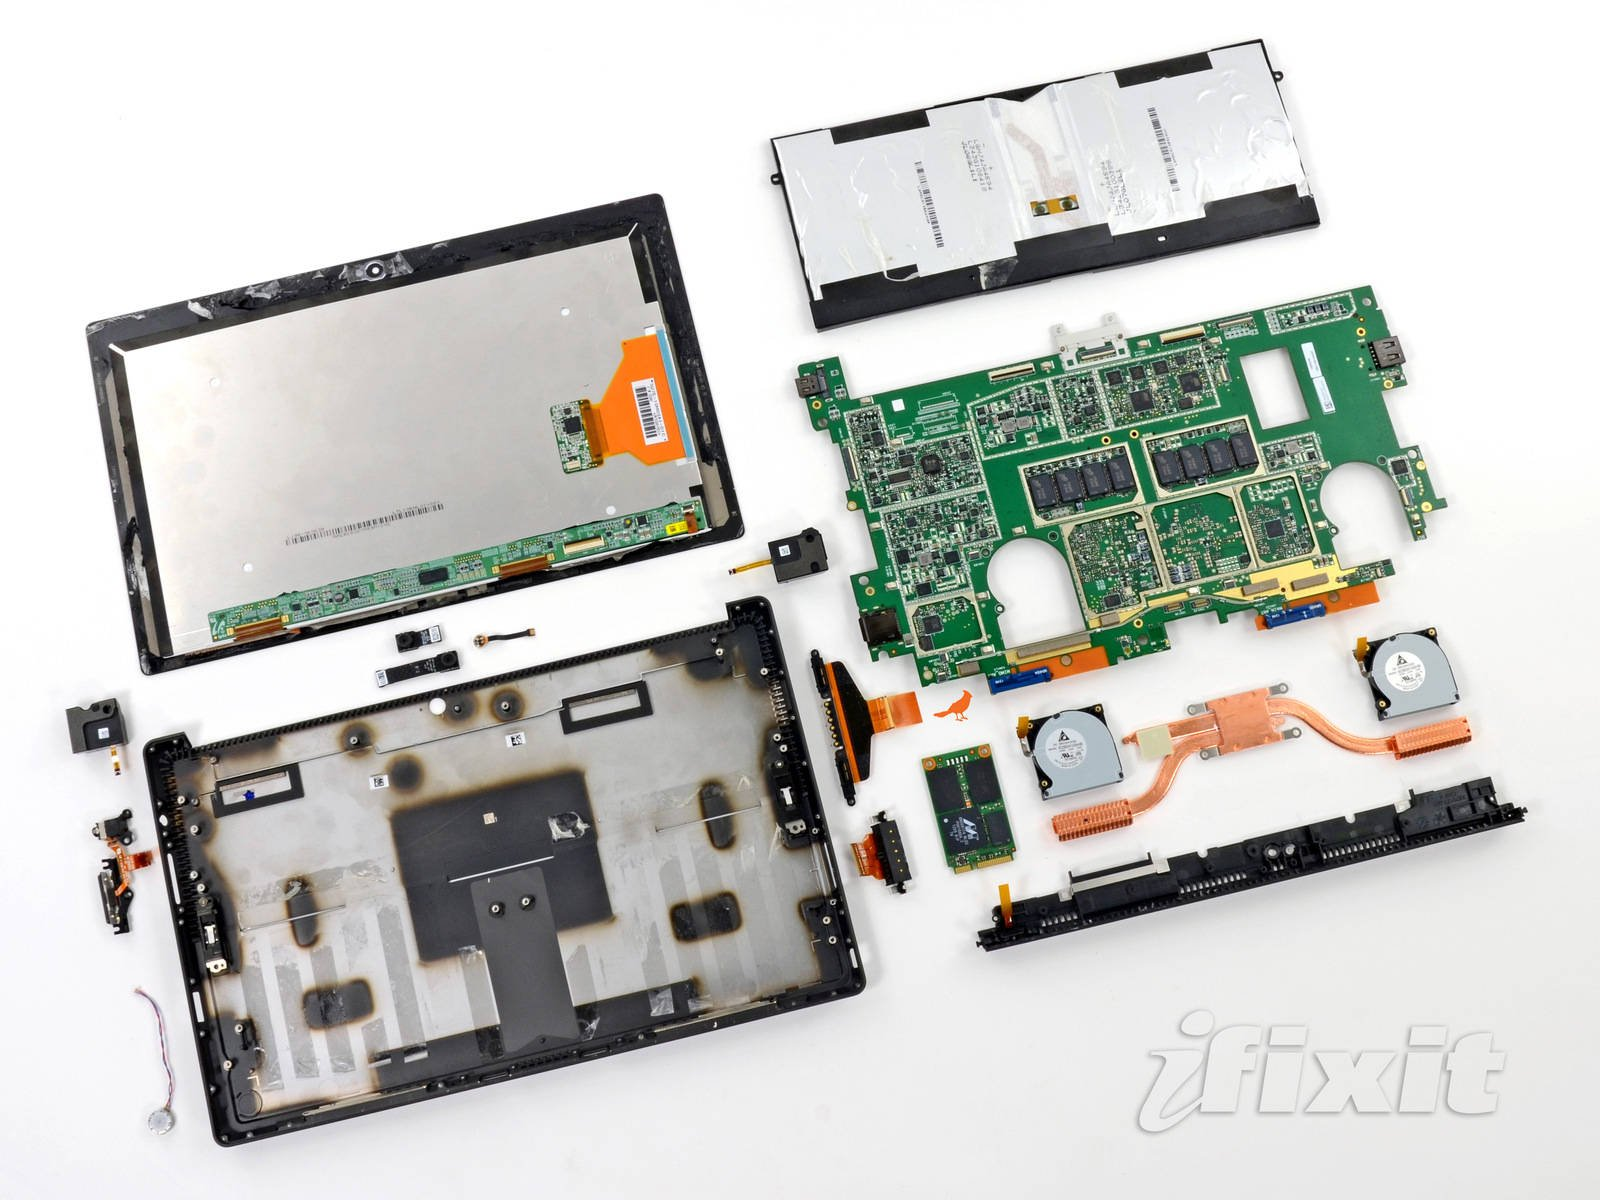 Inside Microsofts Surface Pro A Fiendishly Difficult Journey The Hp Desktop Board Wiring Diagram Microsoft Completely Disassembled